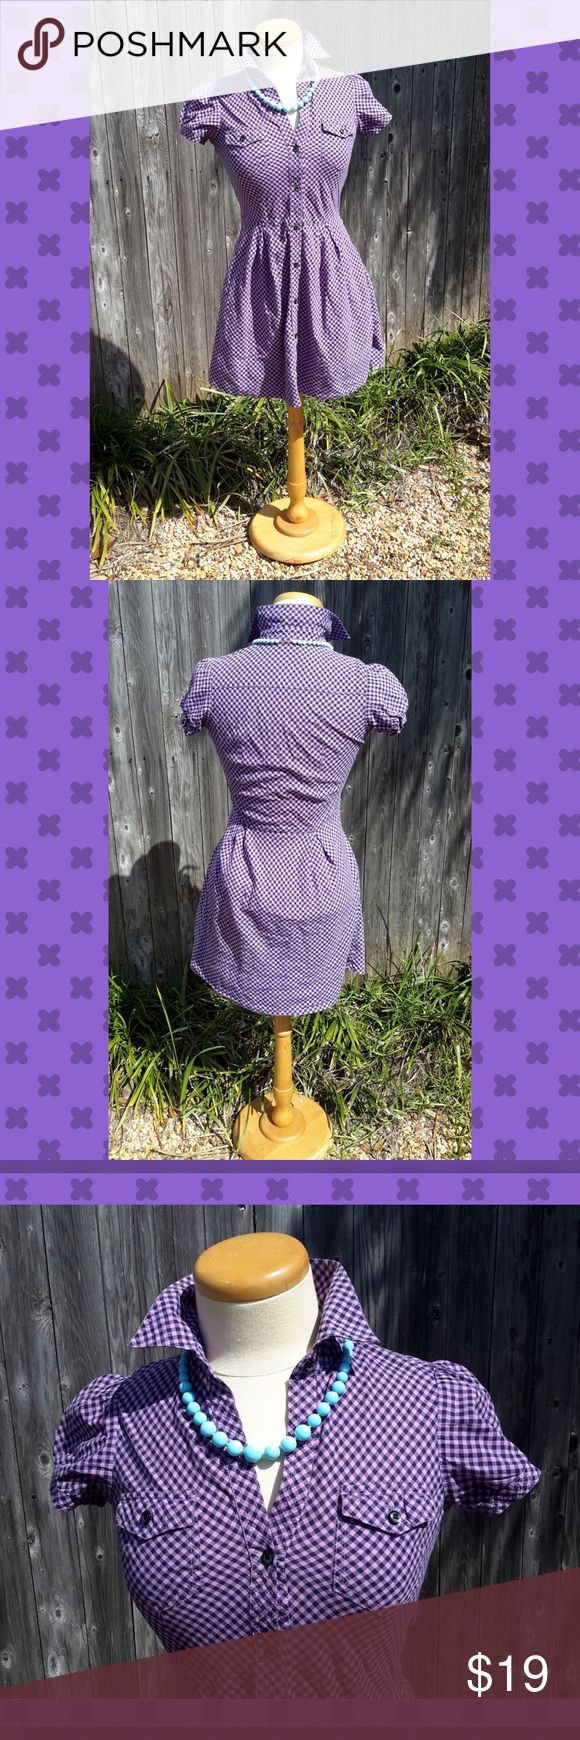 Purple Gingham Button Up Delias Dress Super comfortable cotton button up dress from Delias. In good condition. Purple and black gingham print. Also, it has pockets!!! Rockabilly/country style. Dresses